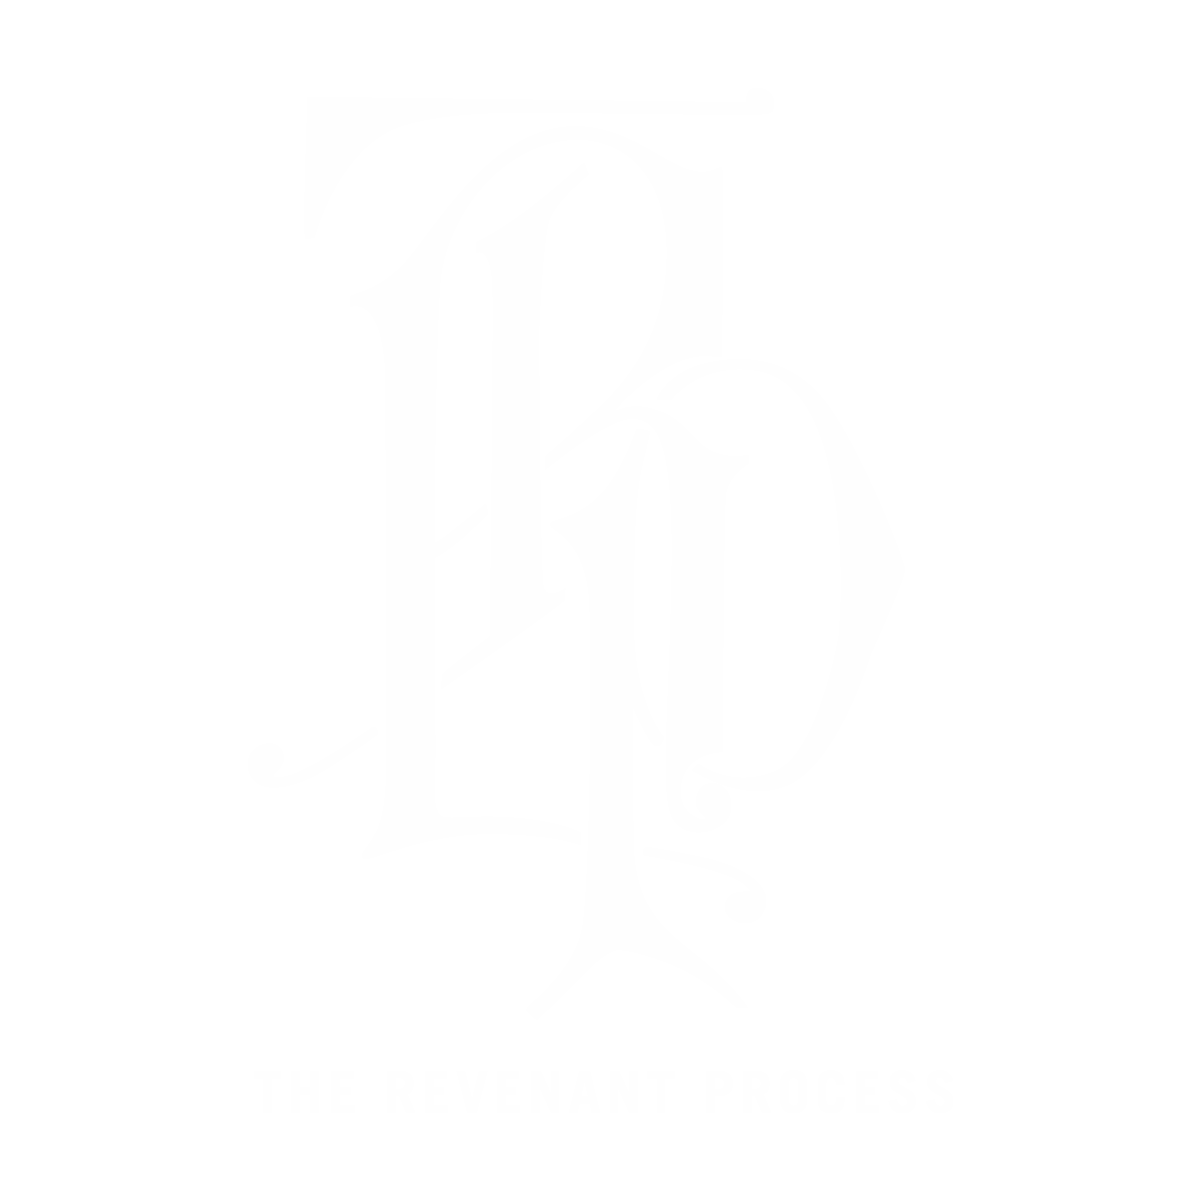 The Revenant Process